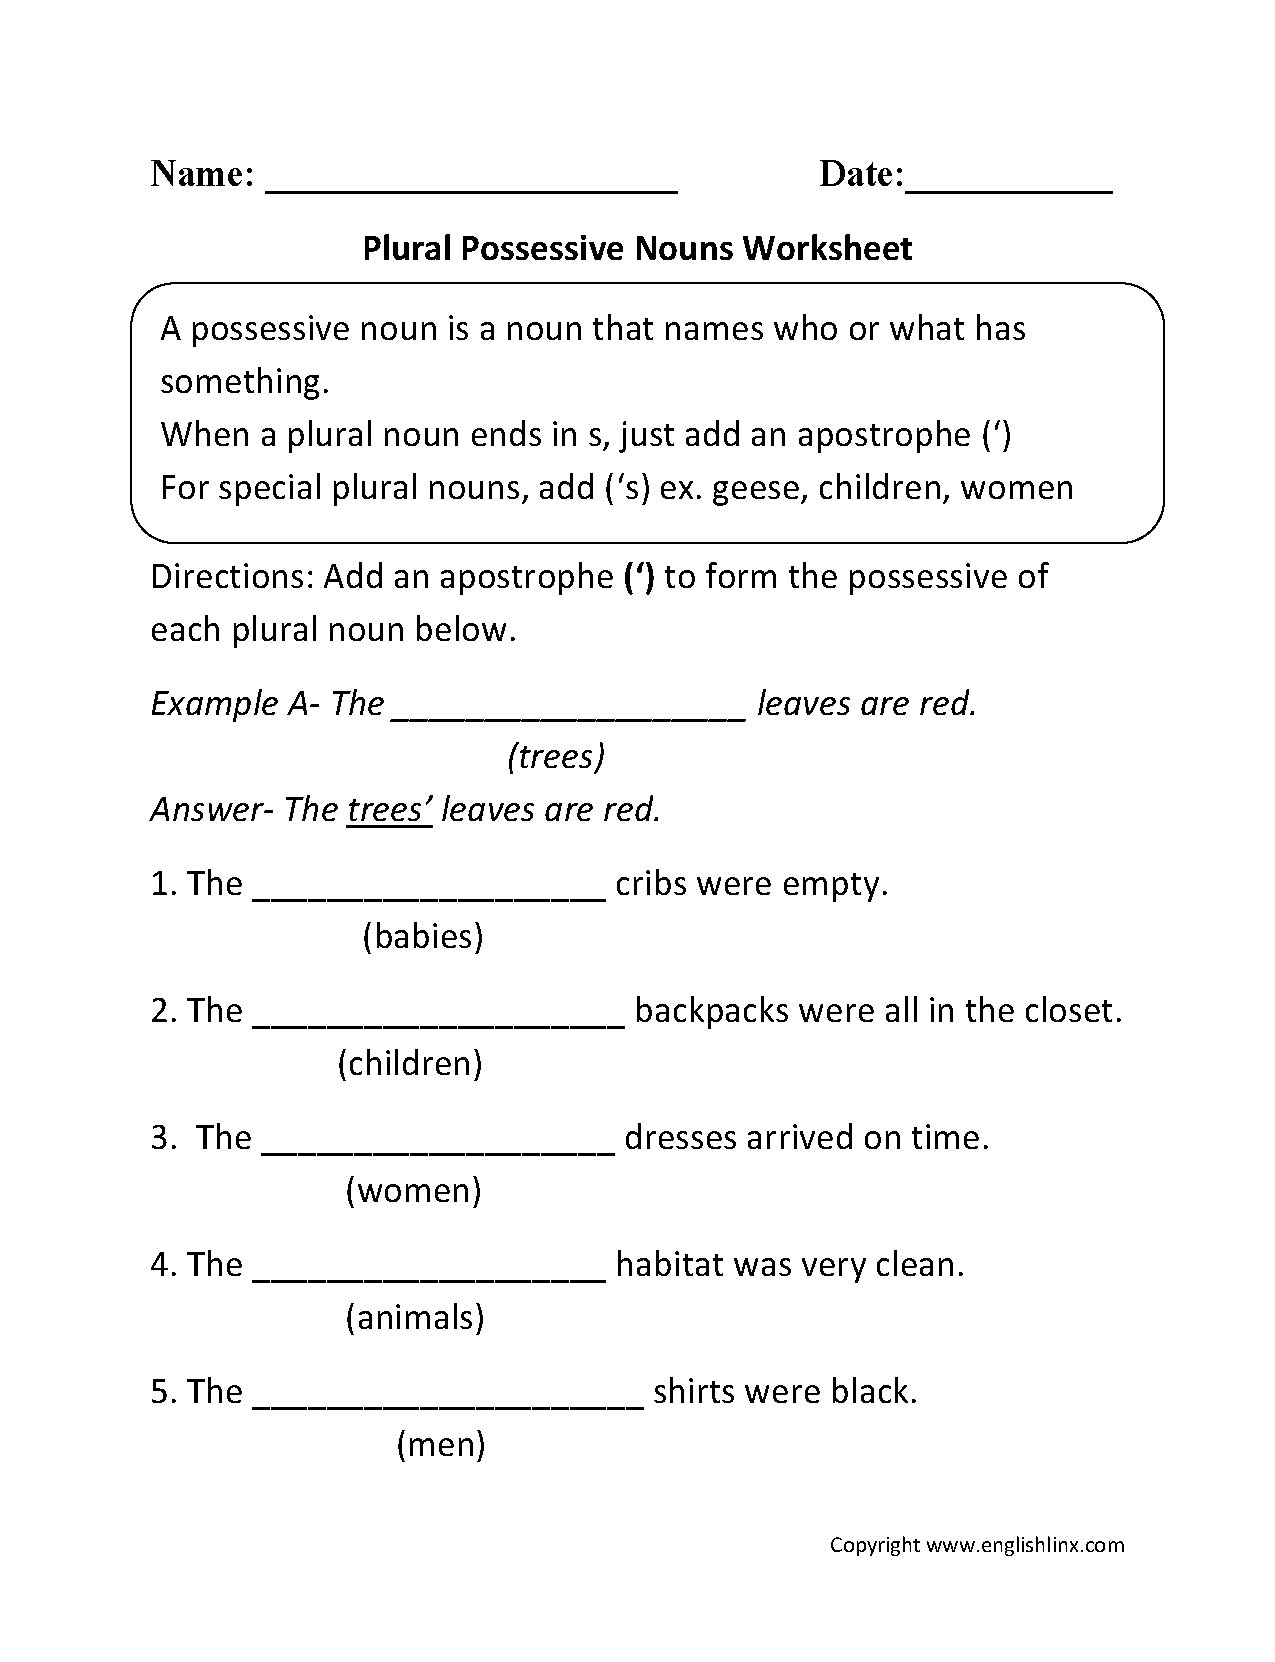 Aldiablosus  Winsome Nouns Worksheets  Possessive Nouns Worksheets With Outstanding Possessive Nouns Worksheets With Extraordinary Worksheets For Math Th Grade Also Worksheet On Fraction In Addition Road Safety For Kids Worksheets And Numbers In Words Worksheet As Well As Skip Counting By  Worksheets For Kindergarten Additionally Free Division Worksheets Rd Grade From Englishlinxcom With Aldiablosus  Outstanding Nouns Worksheets  Possessive Nouns Worksheets With Extraordinary Possessive Nouns Worksheets And Winsome Worksheets For Math Th Grade Also Worksheet On Fraction In Addition Road Safety For Kids Worksheets From Englishlinxcom